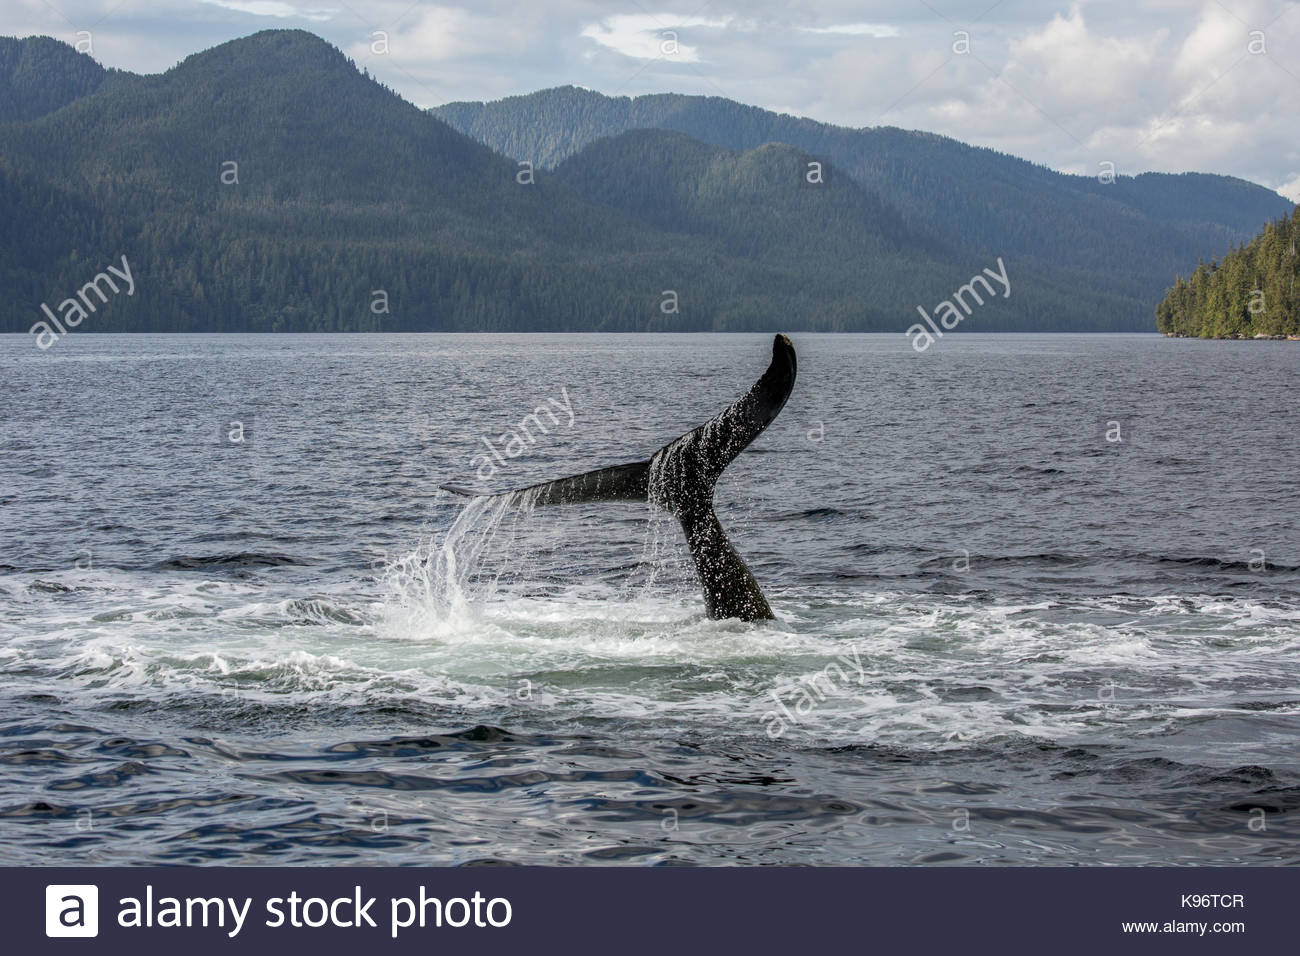 A whale tail above the surface of the water. - Stock Image